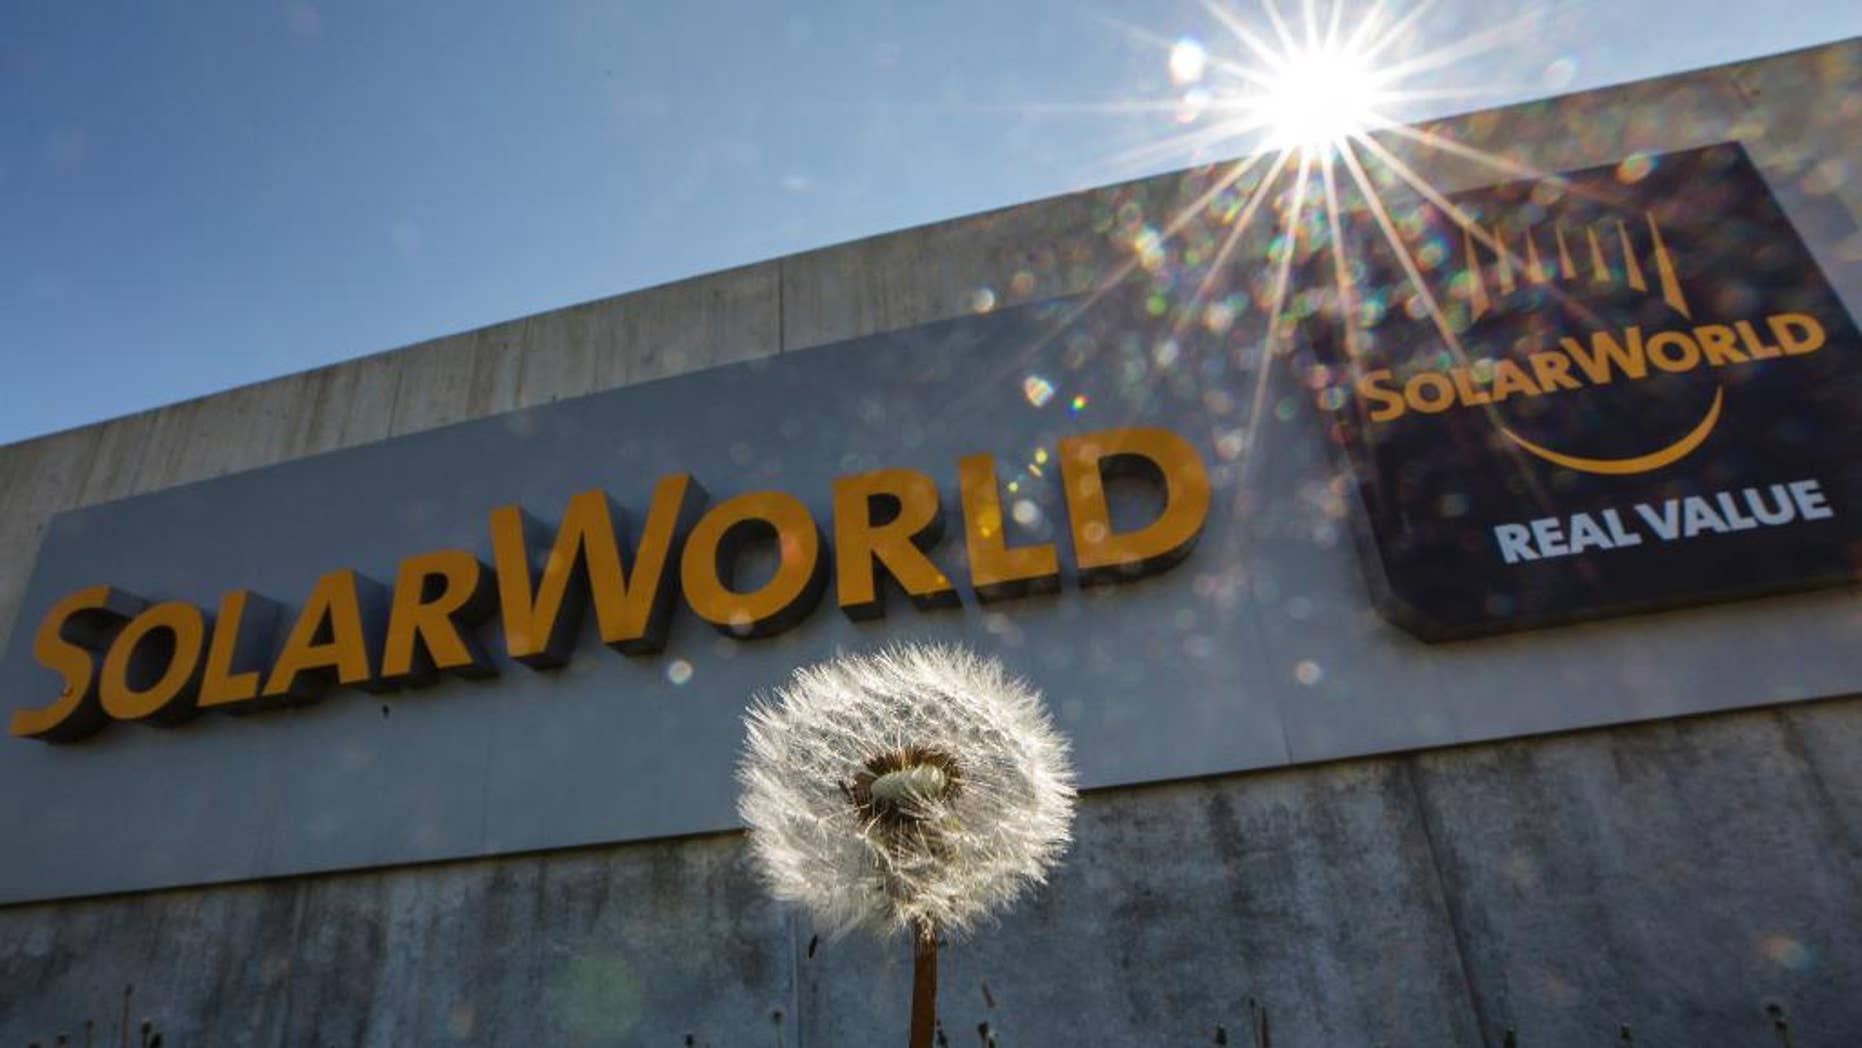 A dandelion stands in front of Solarworld a building in Arnstadt, Germany, Thursday, May 11, 2017. The solar panel manufacturer Solarworld is to file for insolvency. SolarWorld AG has filed for insolvency, citing the effect of falling prices in the industry. (Arifoto Ug/Michael Reichel/dpa via AP)